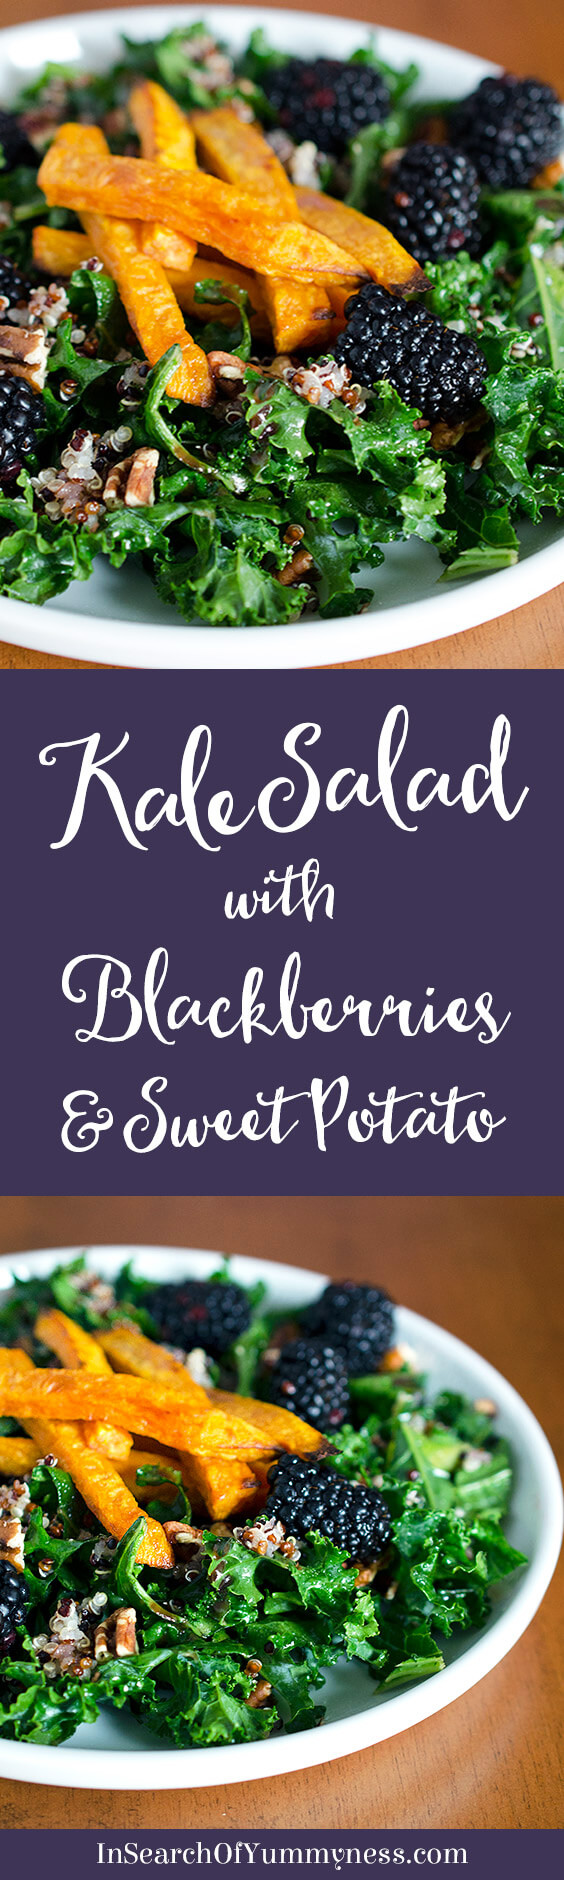 This red quinoa and kale salad with blackberries is so good for you, and it tastes great too! The secret is in the tangy lime and maple dressing. Get the recipe at InSearchOfYummyness.com